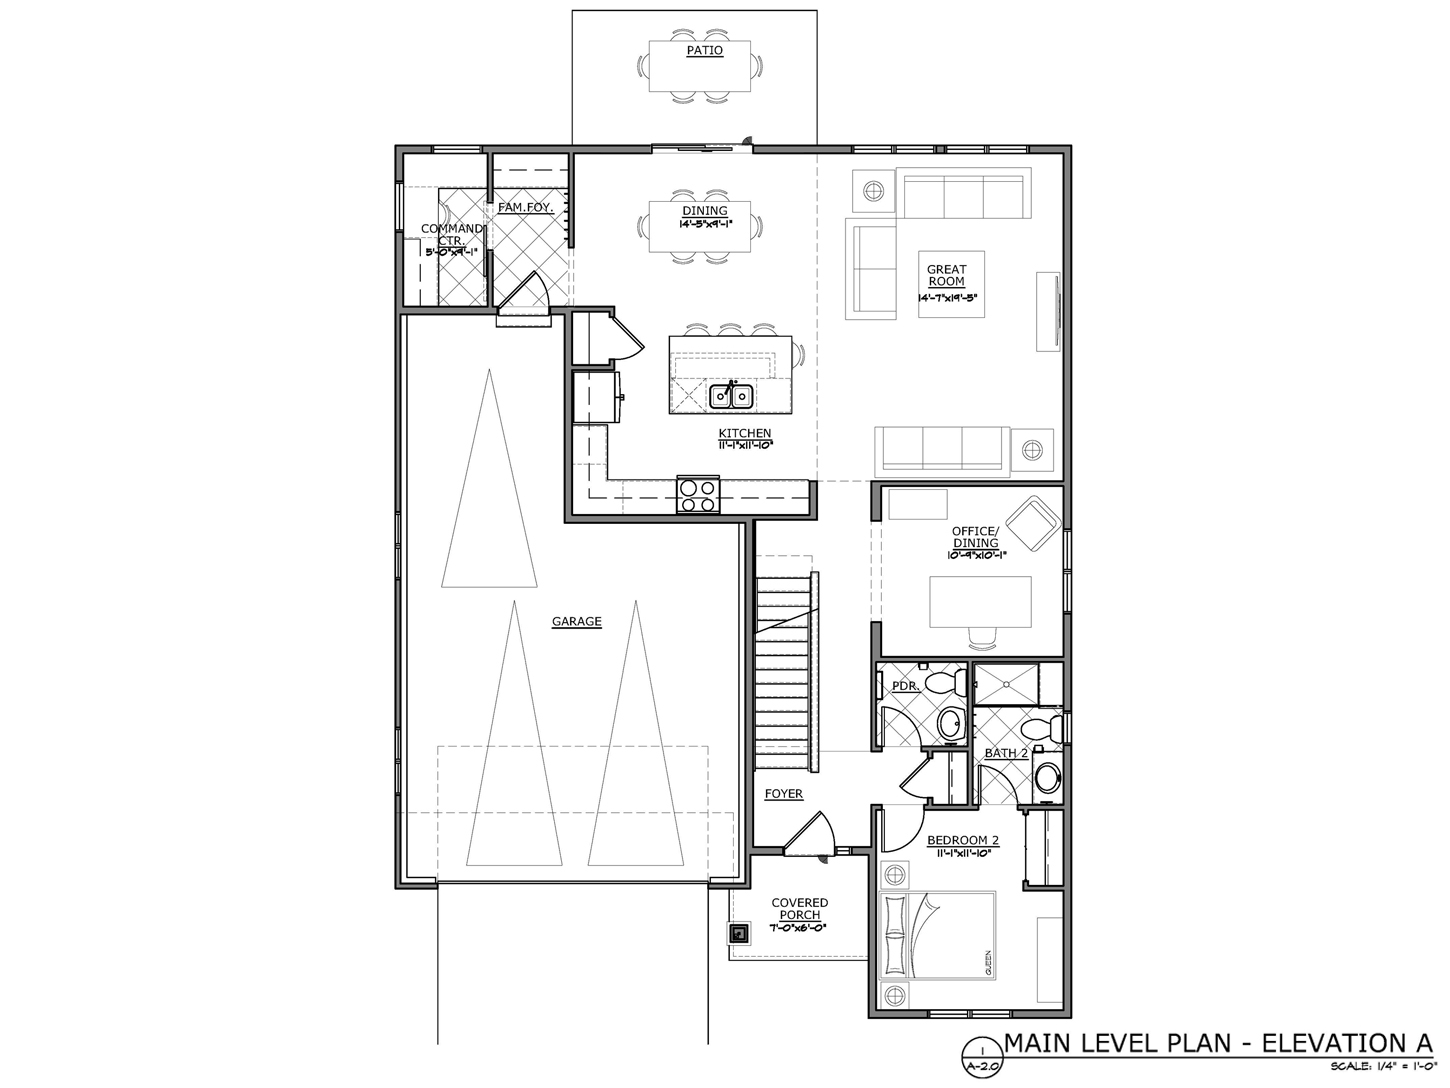 03_monarch_ft_collins_main_level_elevation_a_fox_grove